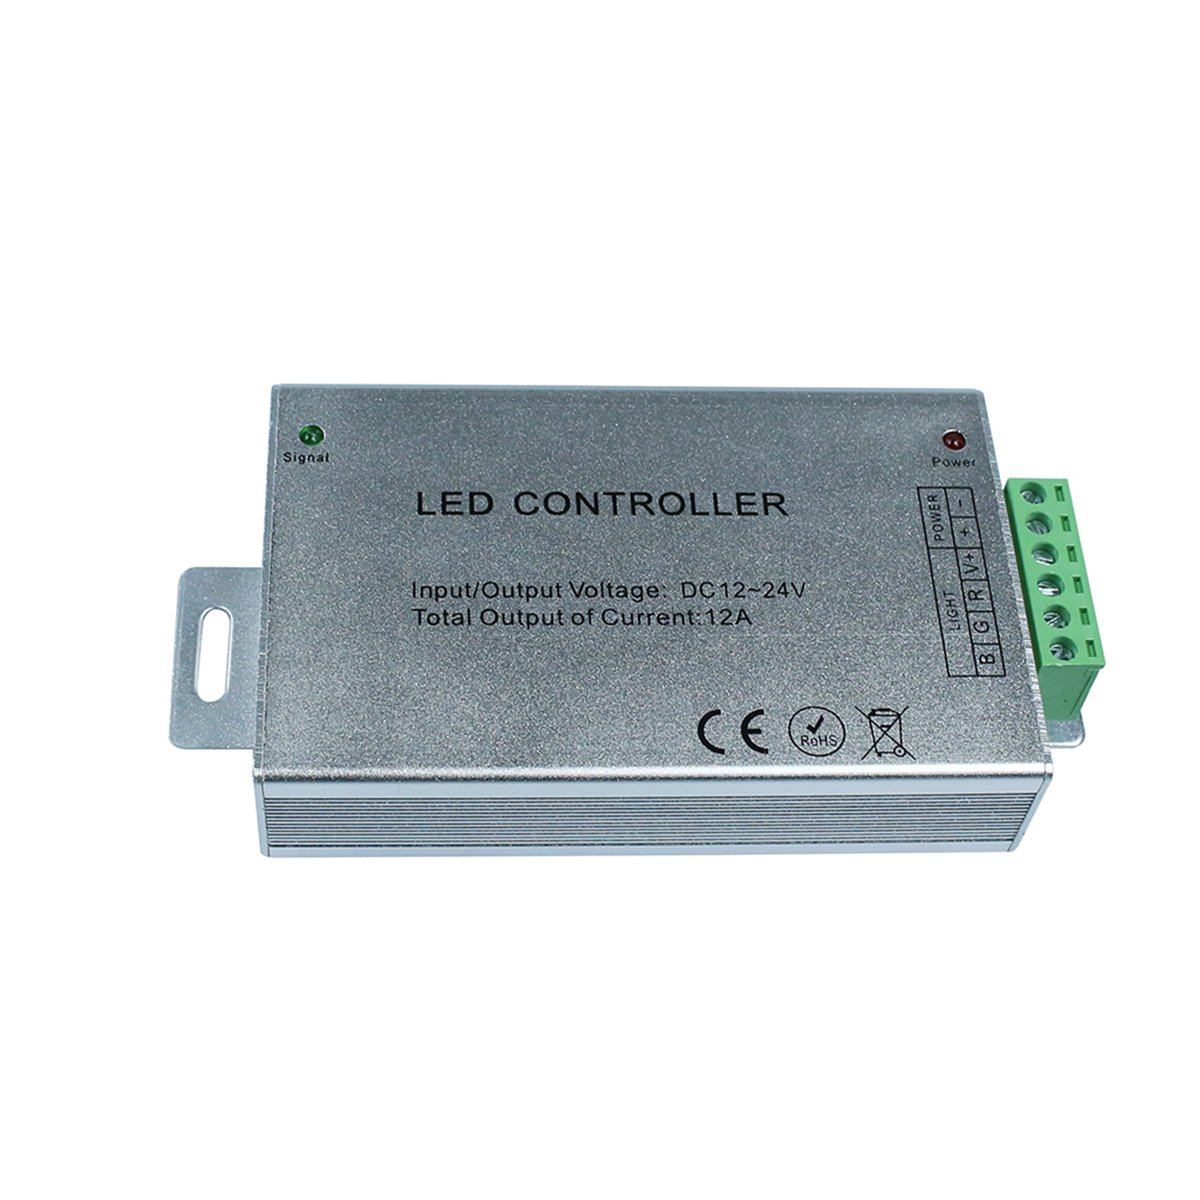 KPBOTL DC12-24V 12A RGB led controller, IR controller with 44 Key Remote control,Aluminum light controller for 3528 5050 RGB led strips by KPBOTL (Image #3)